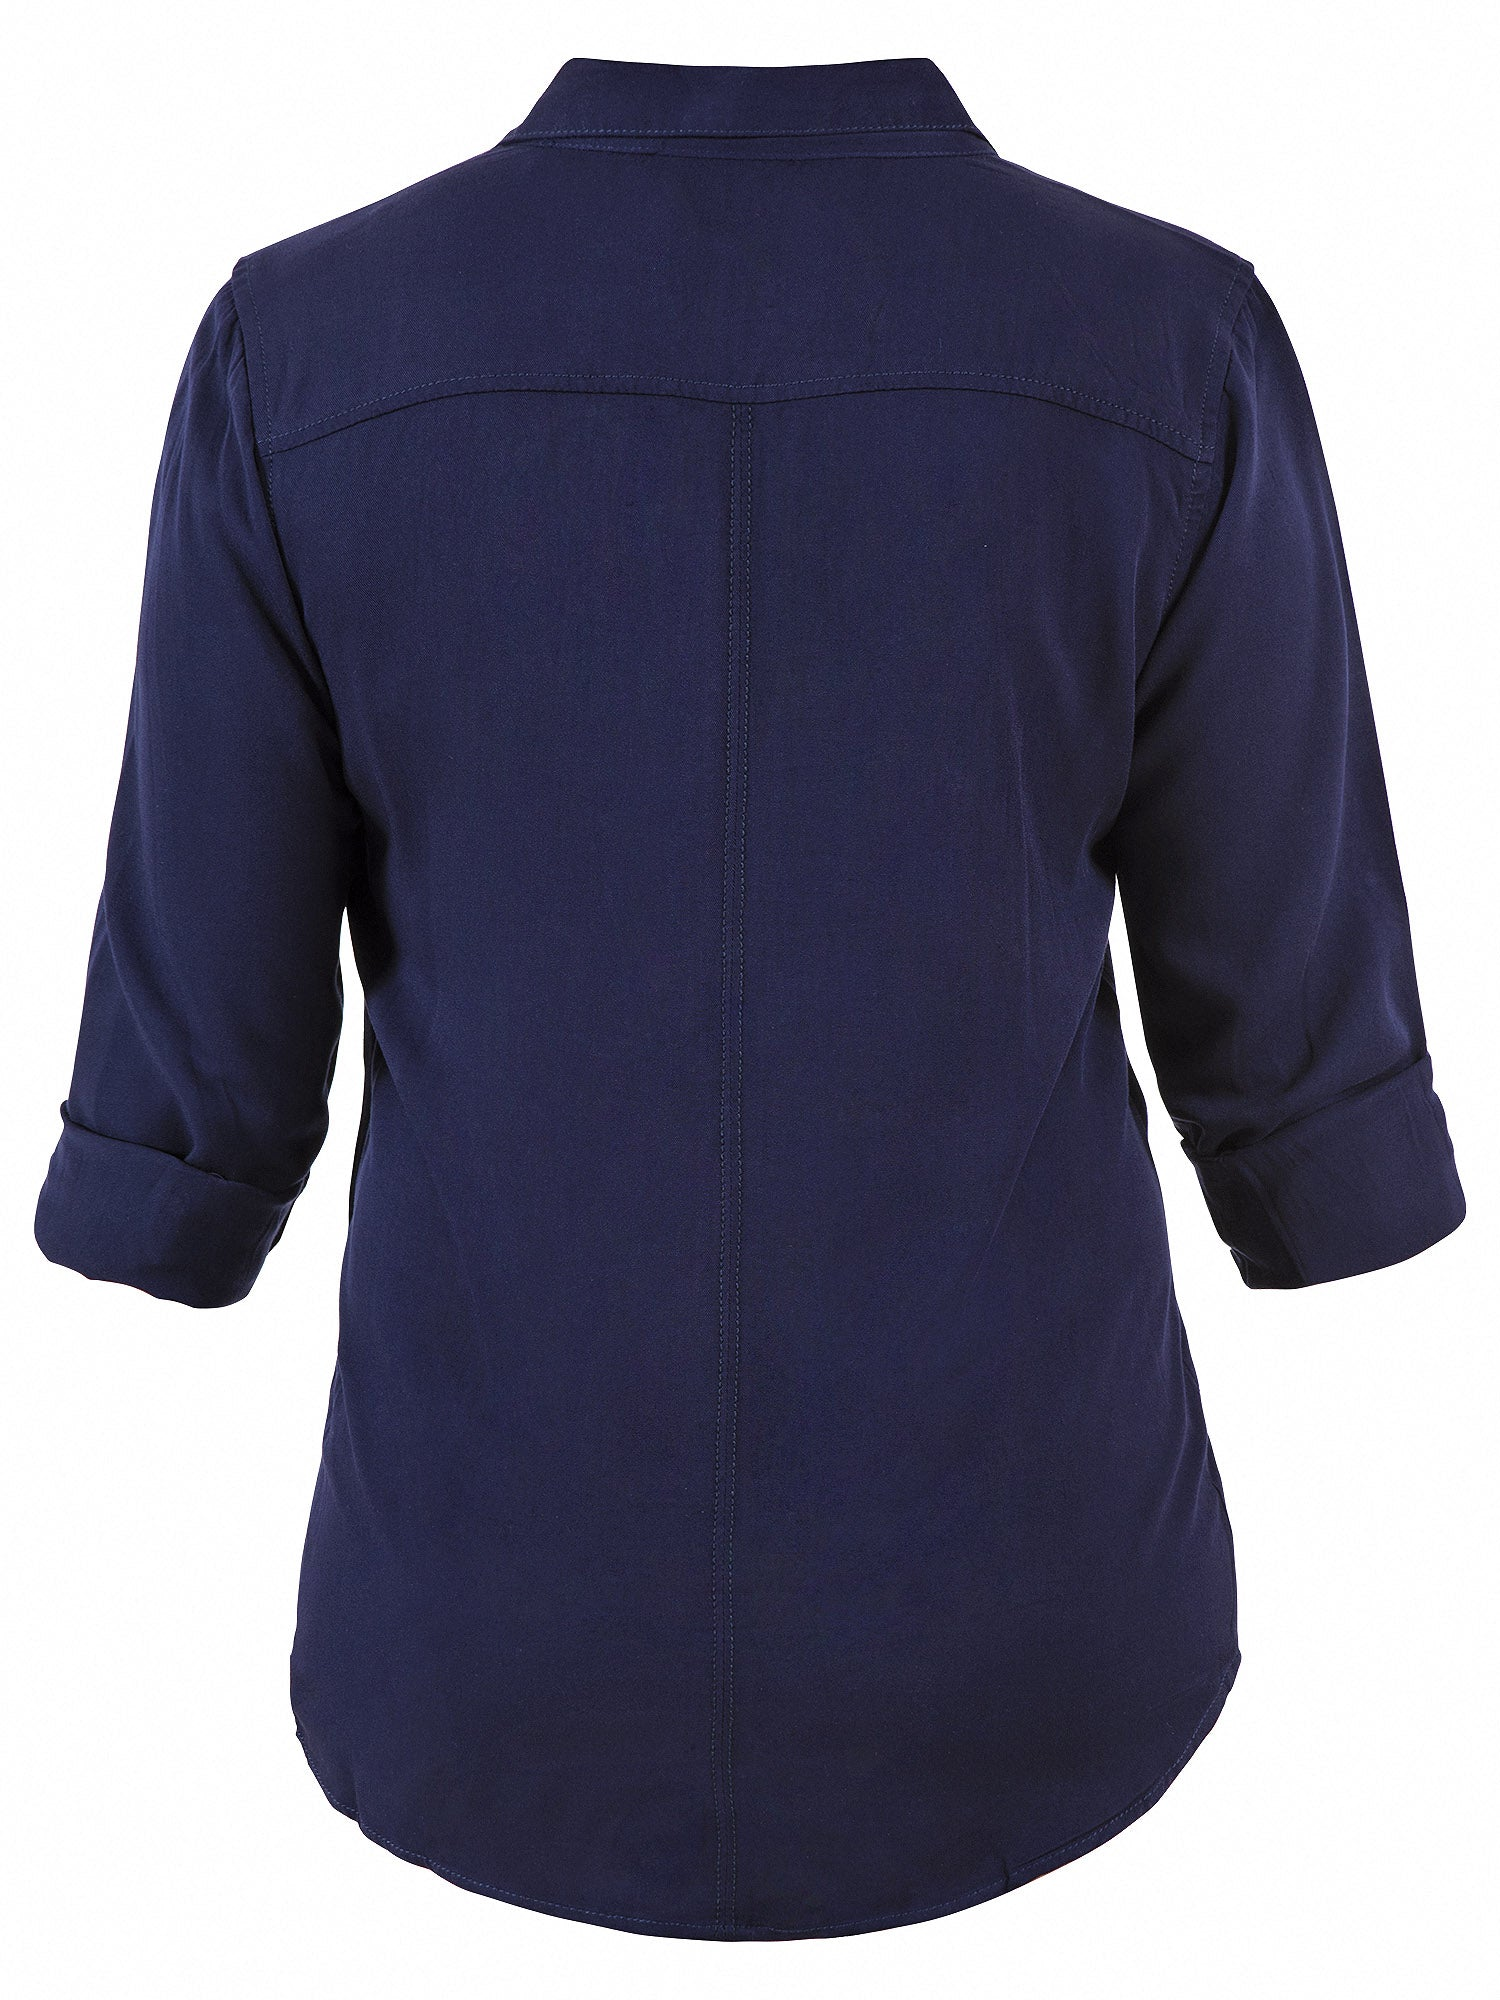 LUXURY SOFT LONG SLEEVE SHIRT